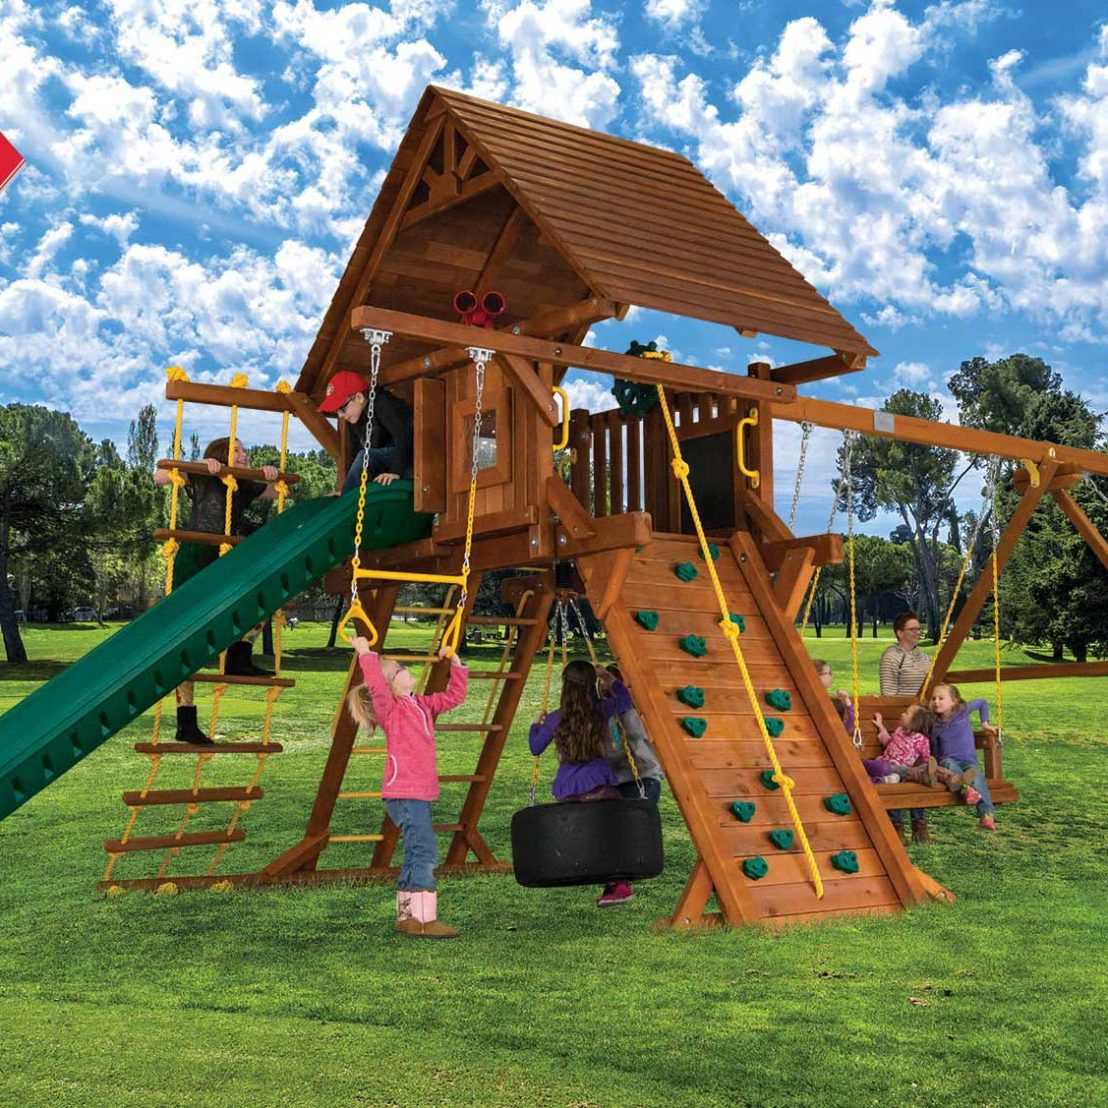 Sunshine Super Turbo Castle Pkg II with Wood Roofs Wooden Swing Set